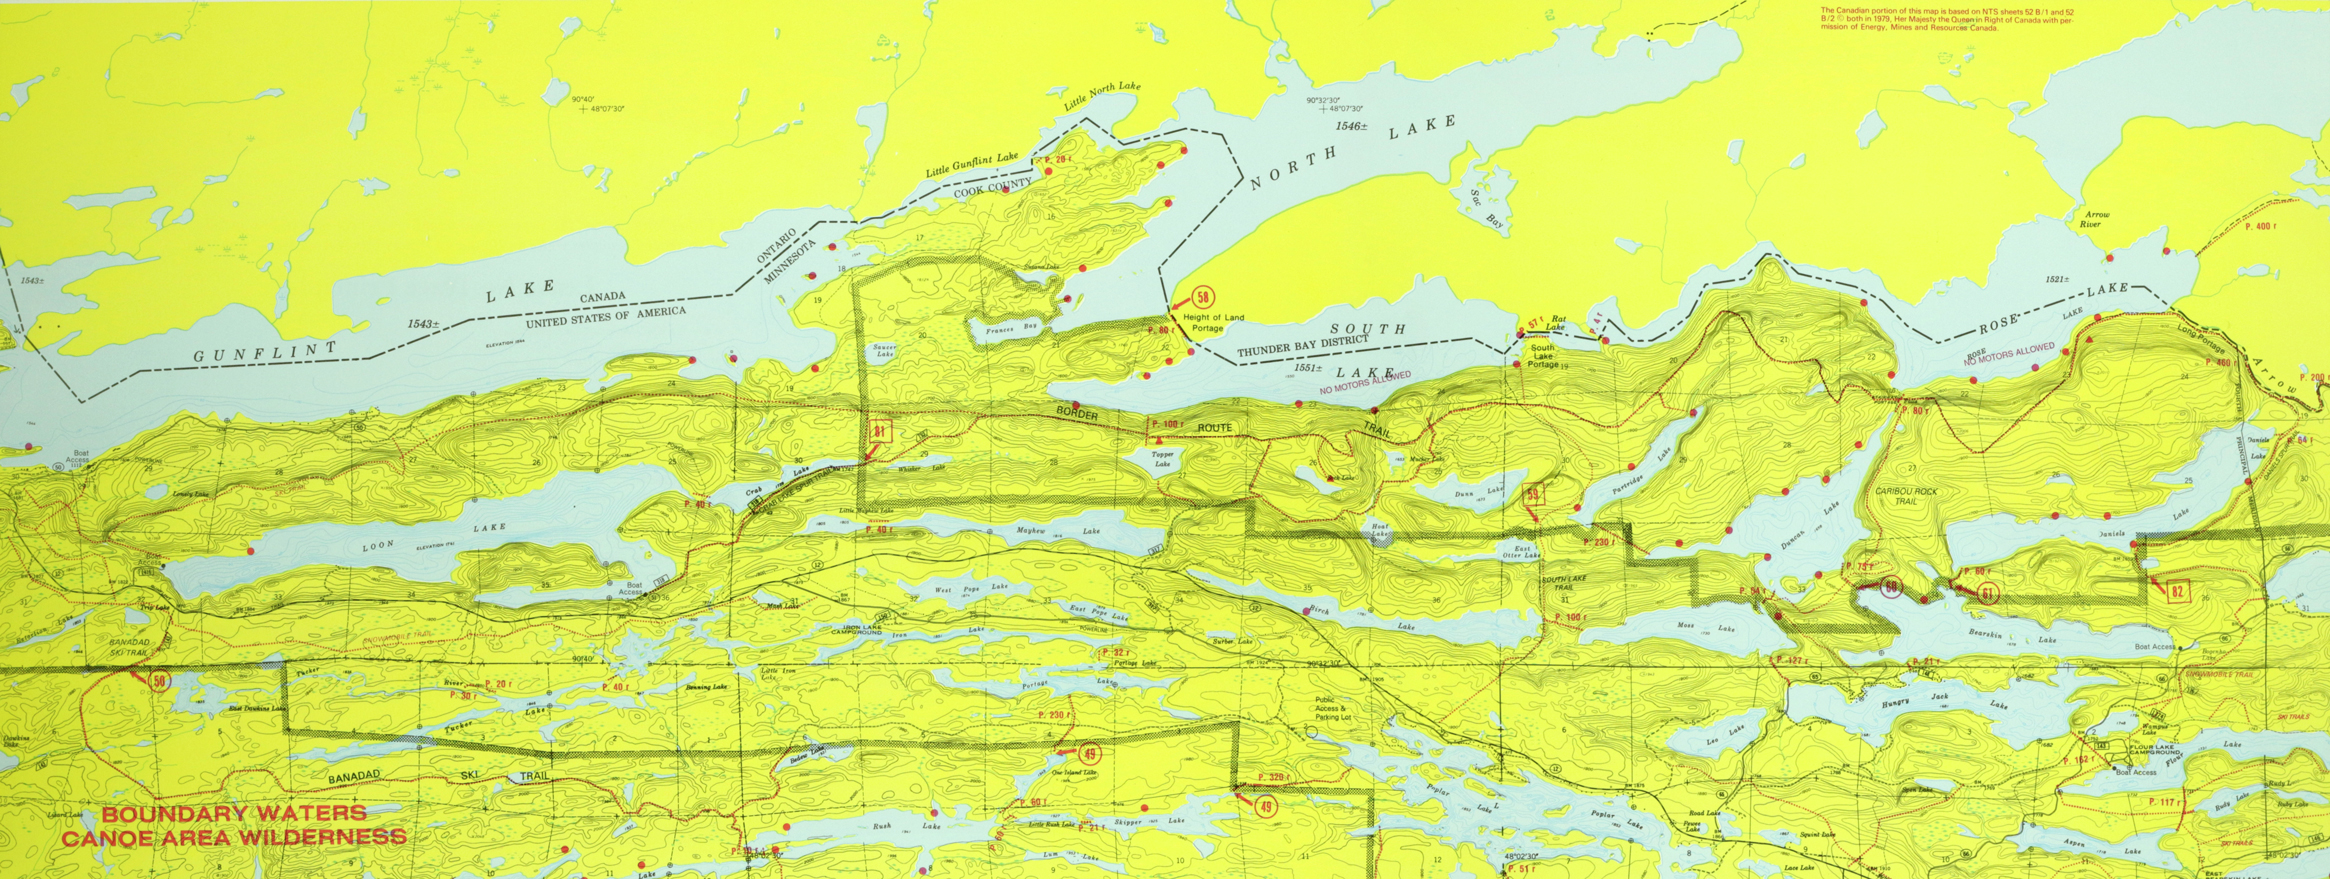 Canadian Border Route Seagull Canoe Outfitters Lakeside Cabins